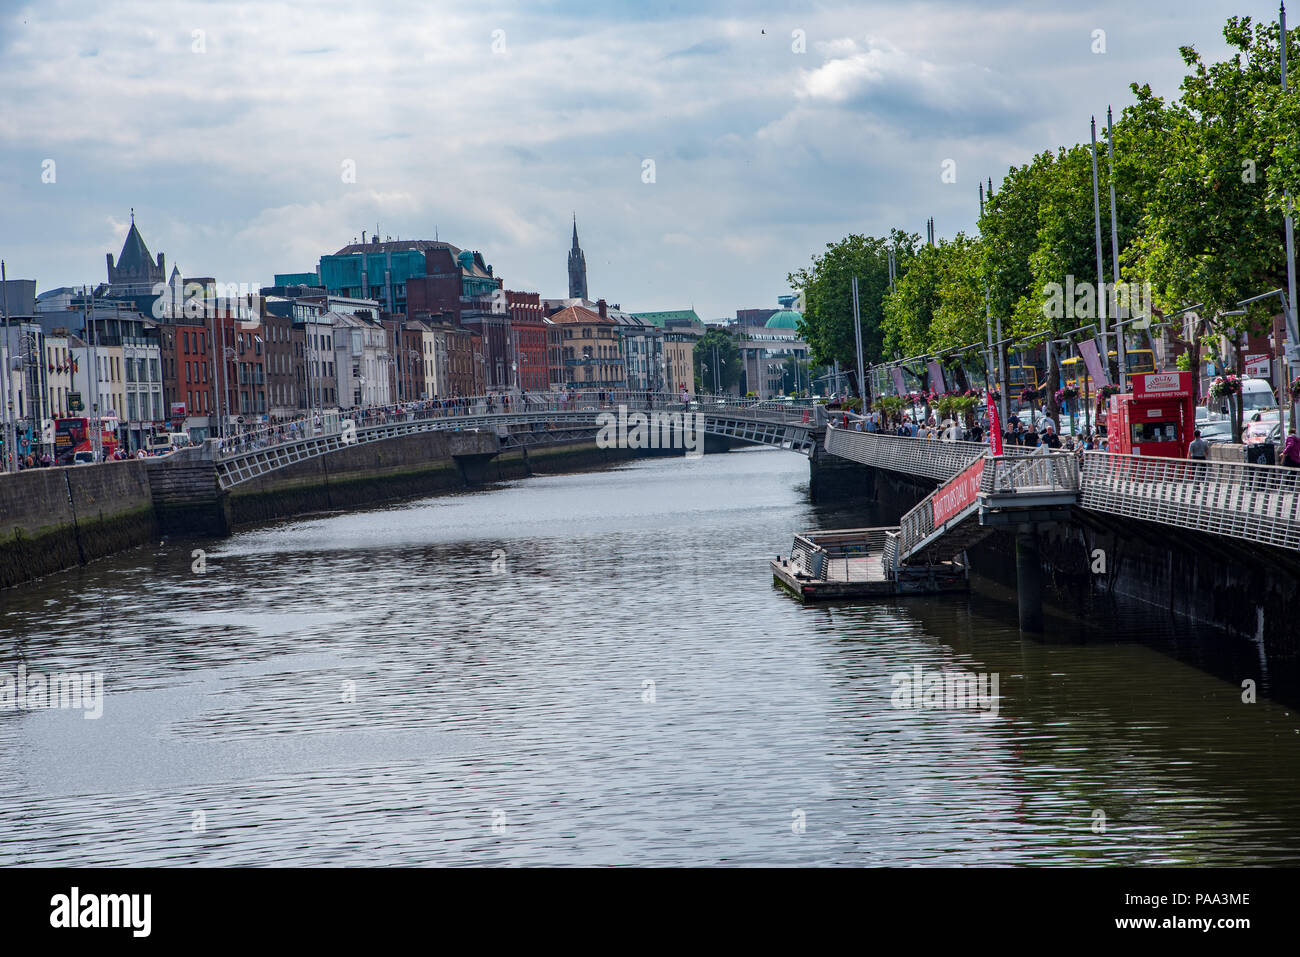 Pedestrians, flats and tour tour busses on the banks of the River Liffey. - Stock Image